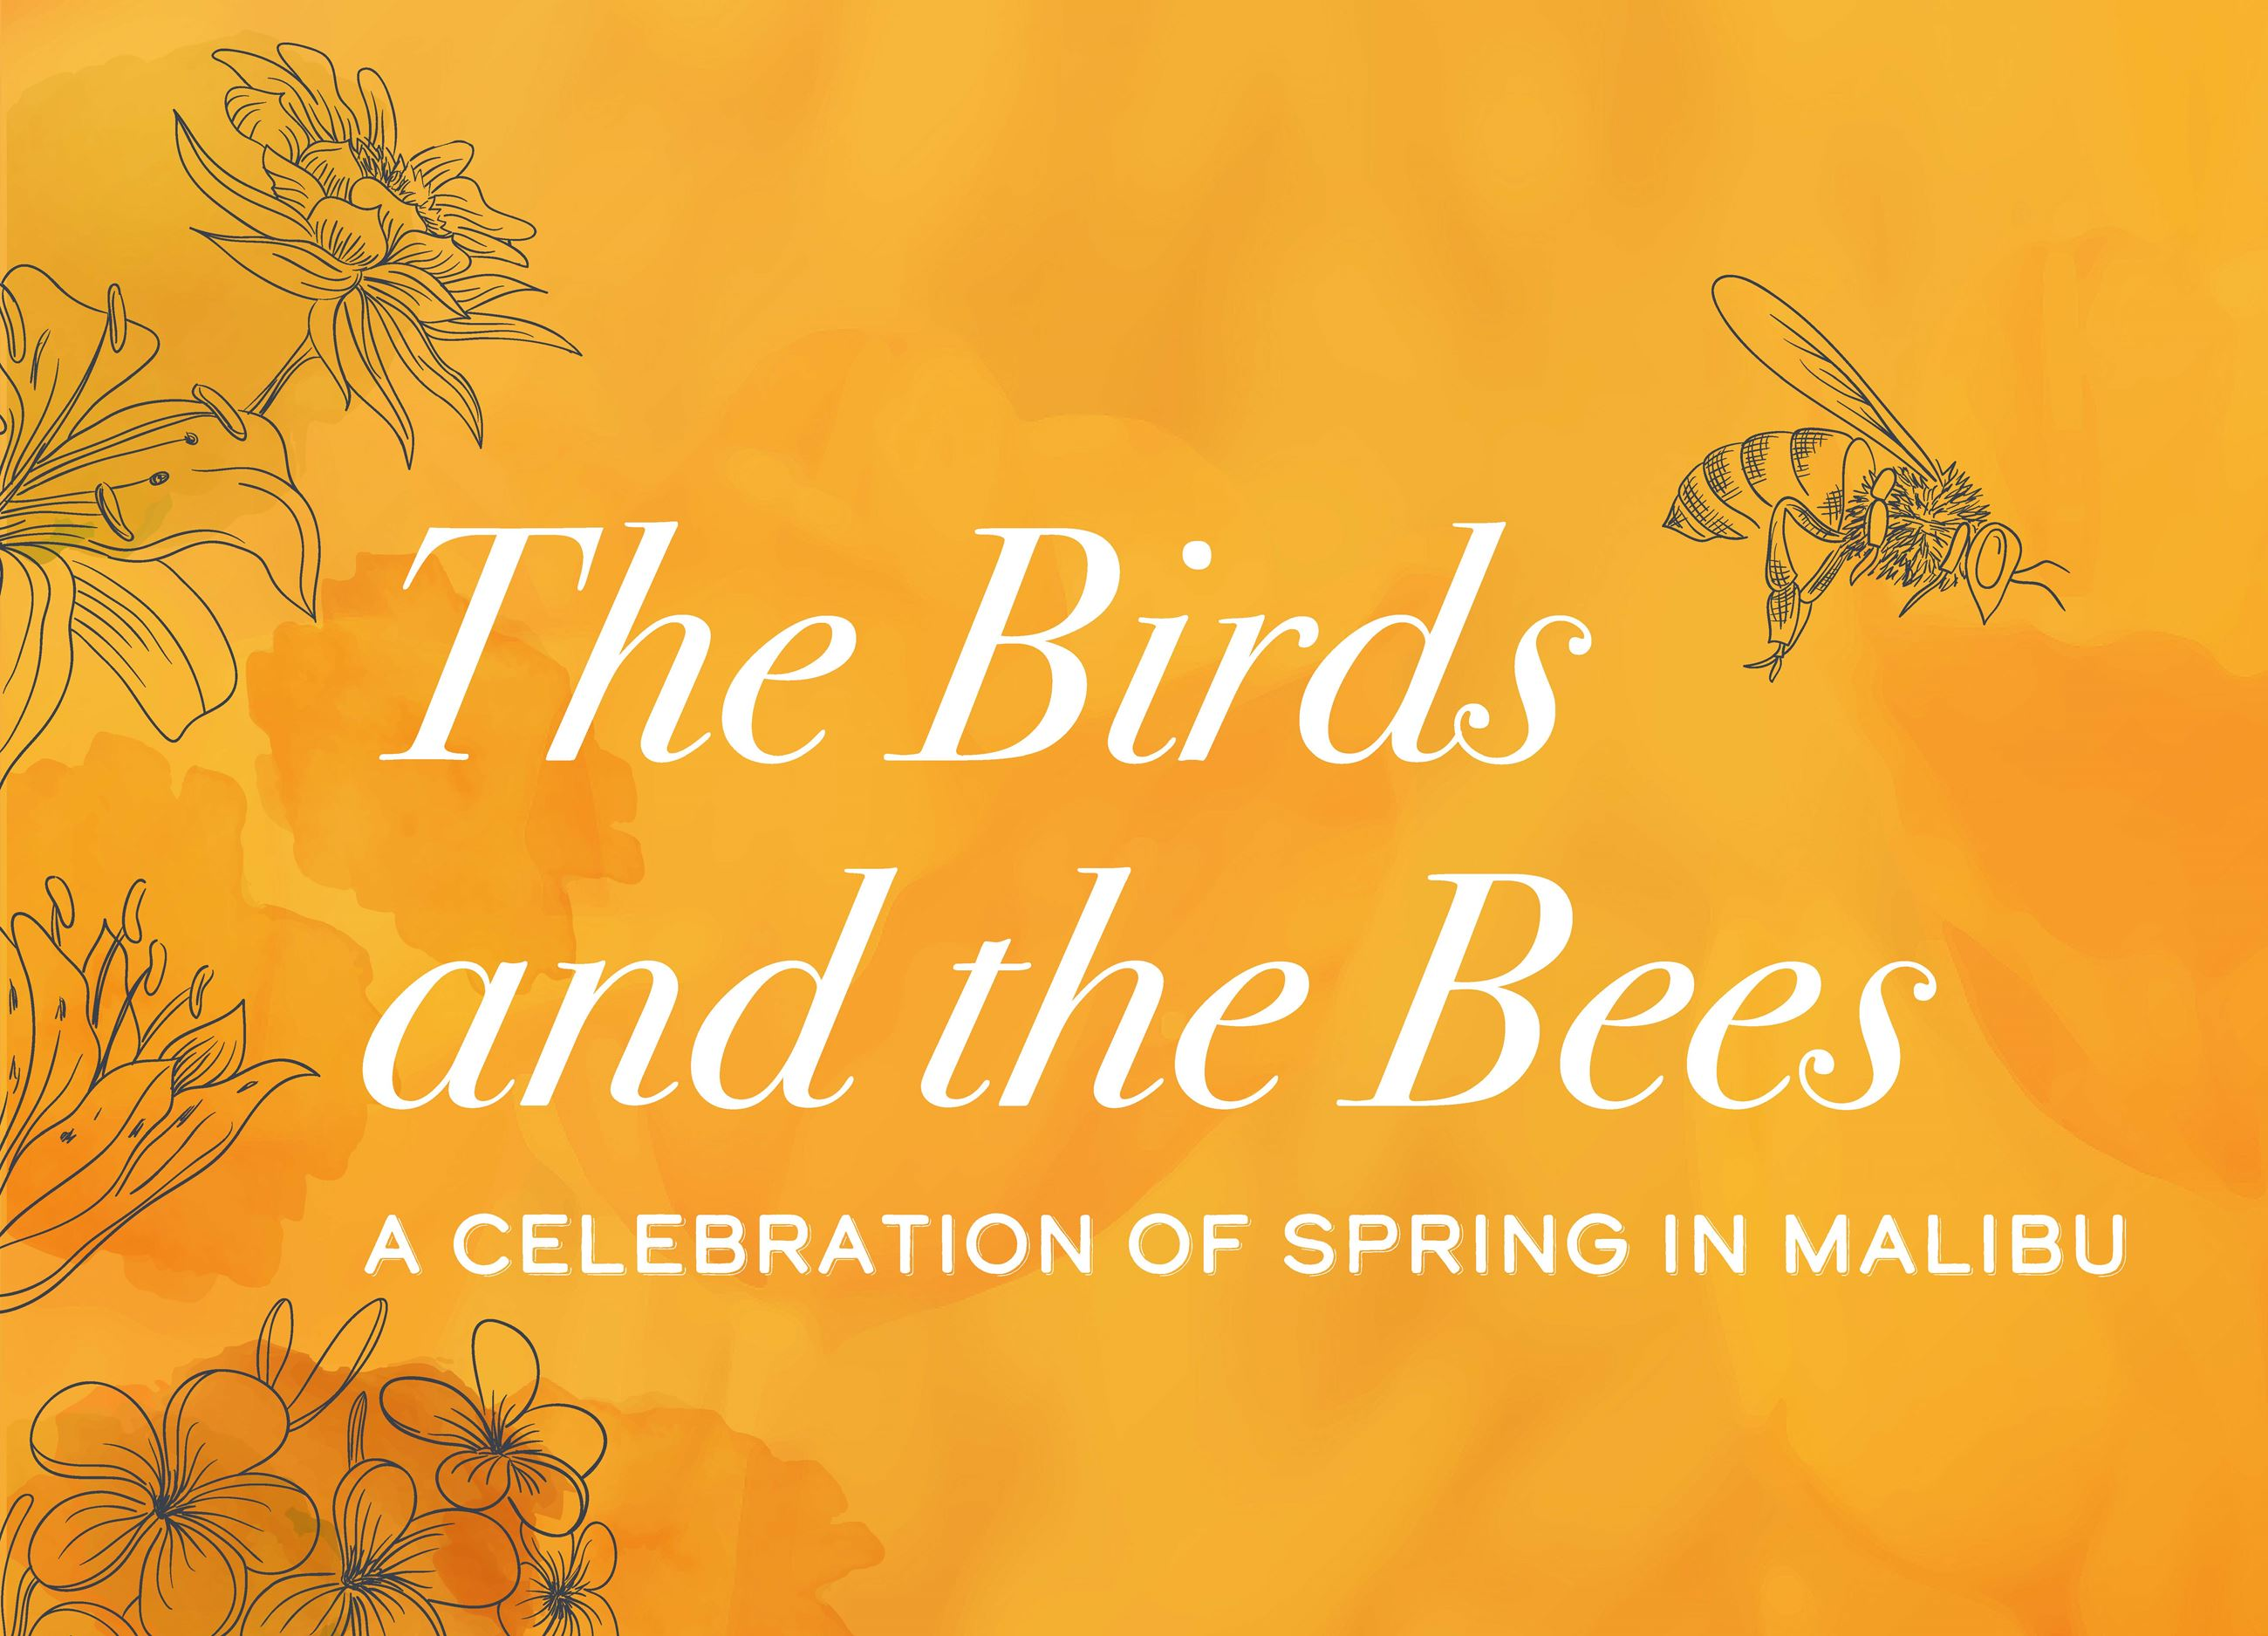 The Birds and the Bees Art Exhibition Title Image